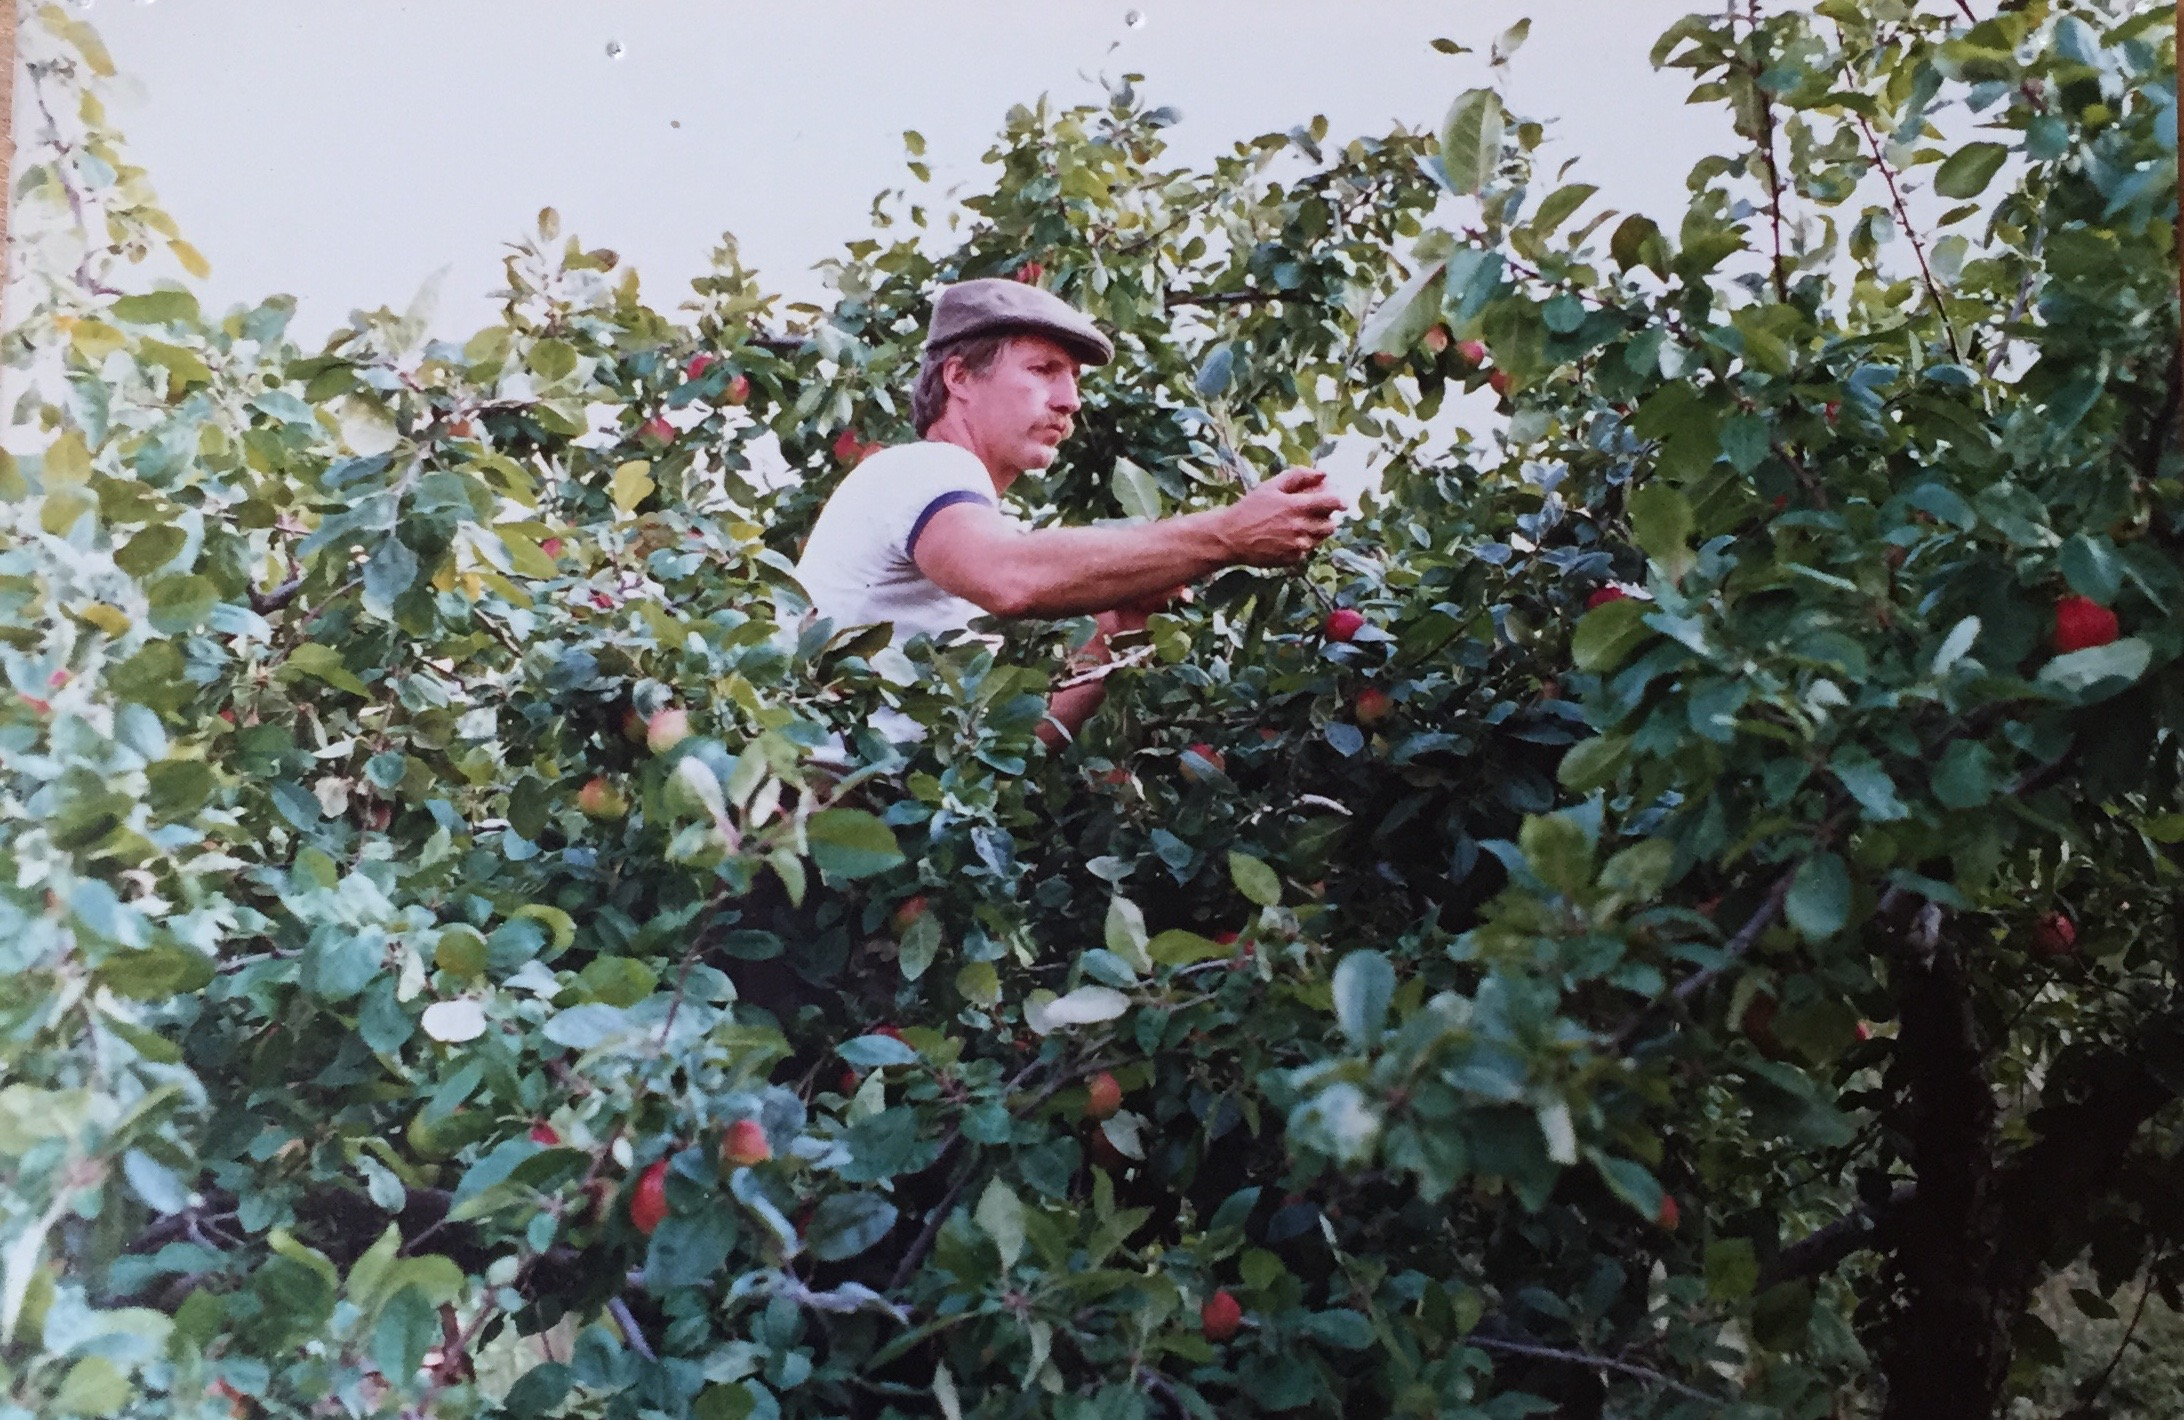 Yip's son, Chas, picking apples